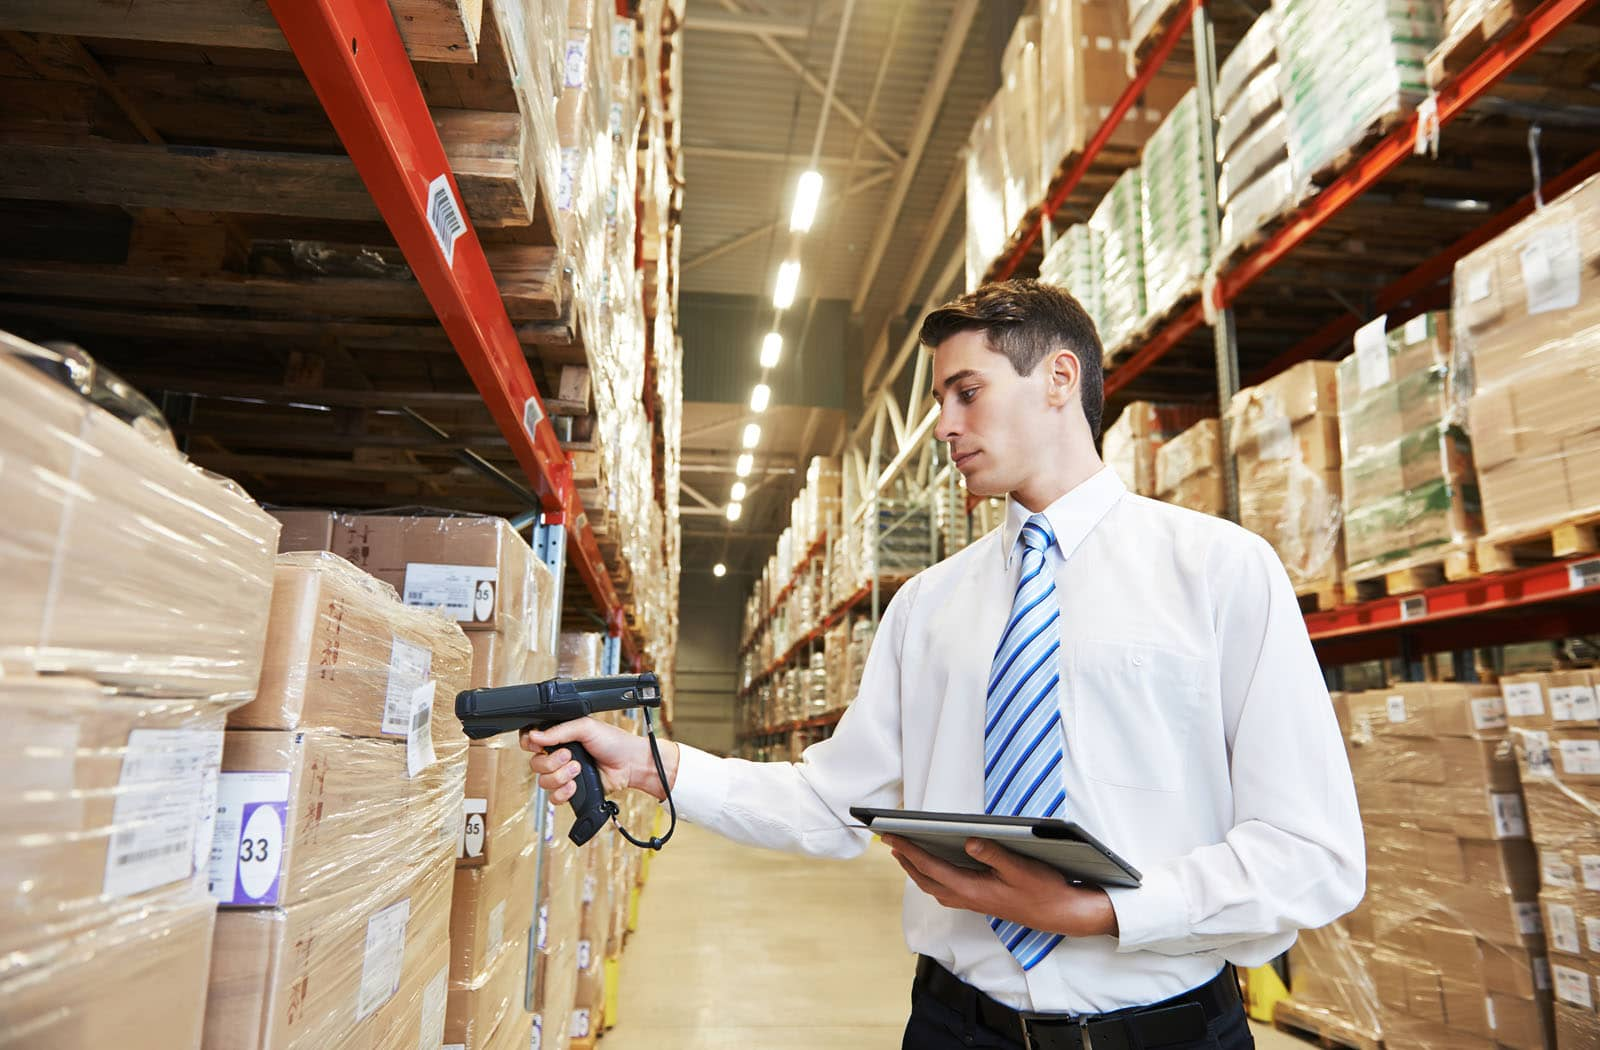 Warehouse Website Advanced Warehouse Management Software Open Systems